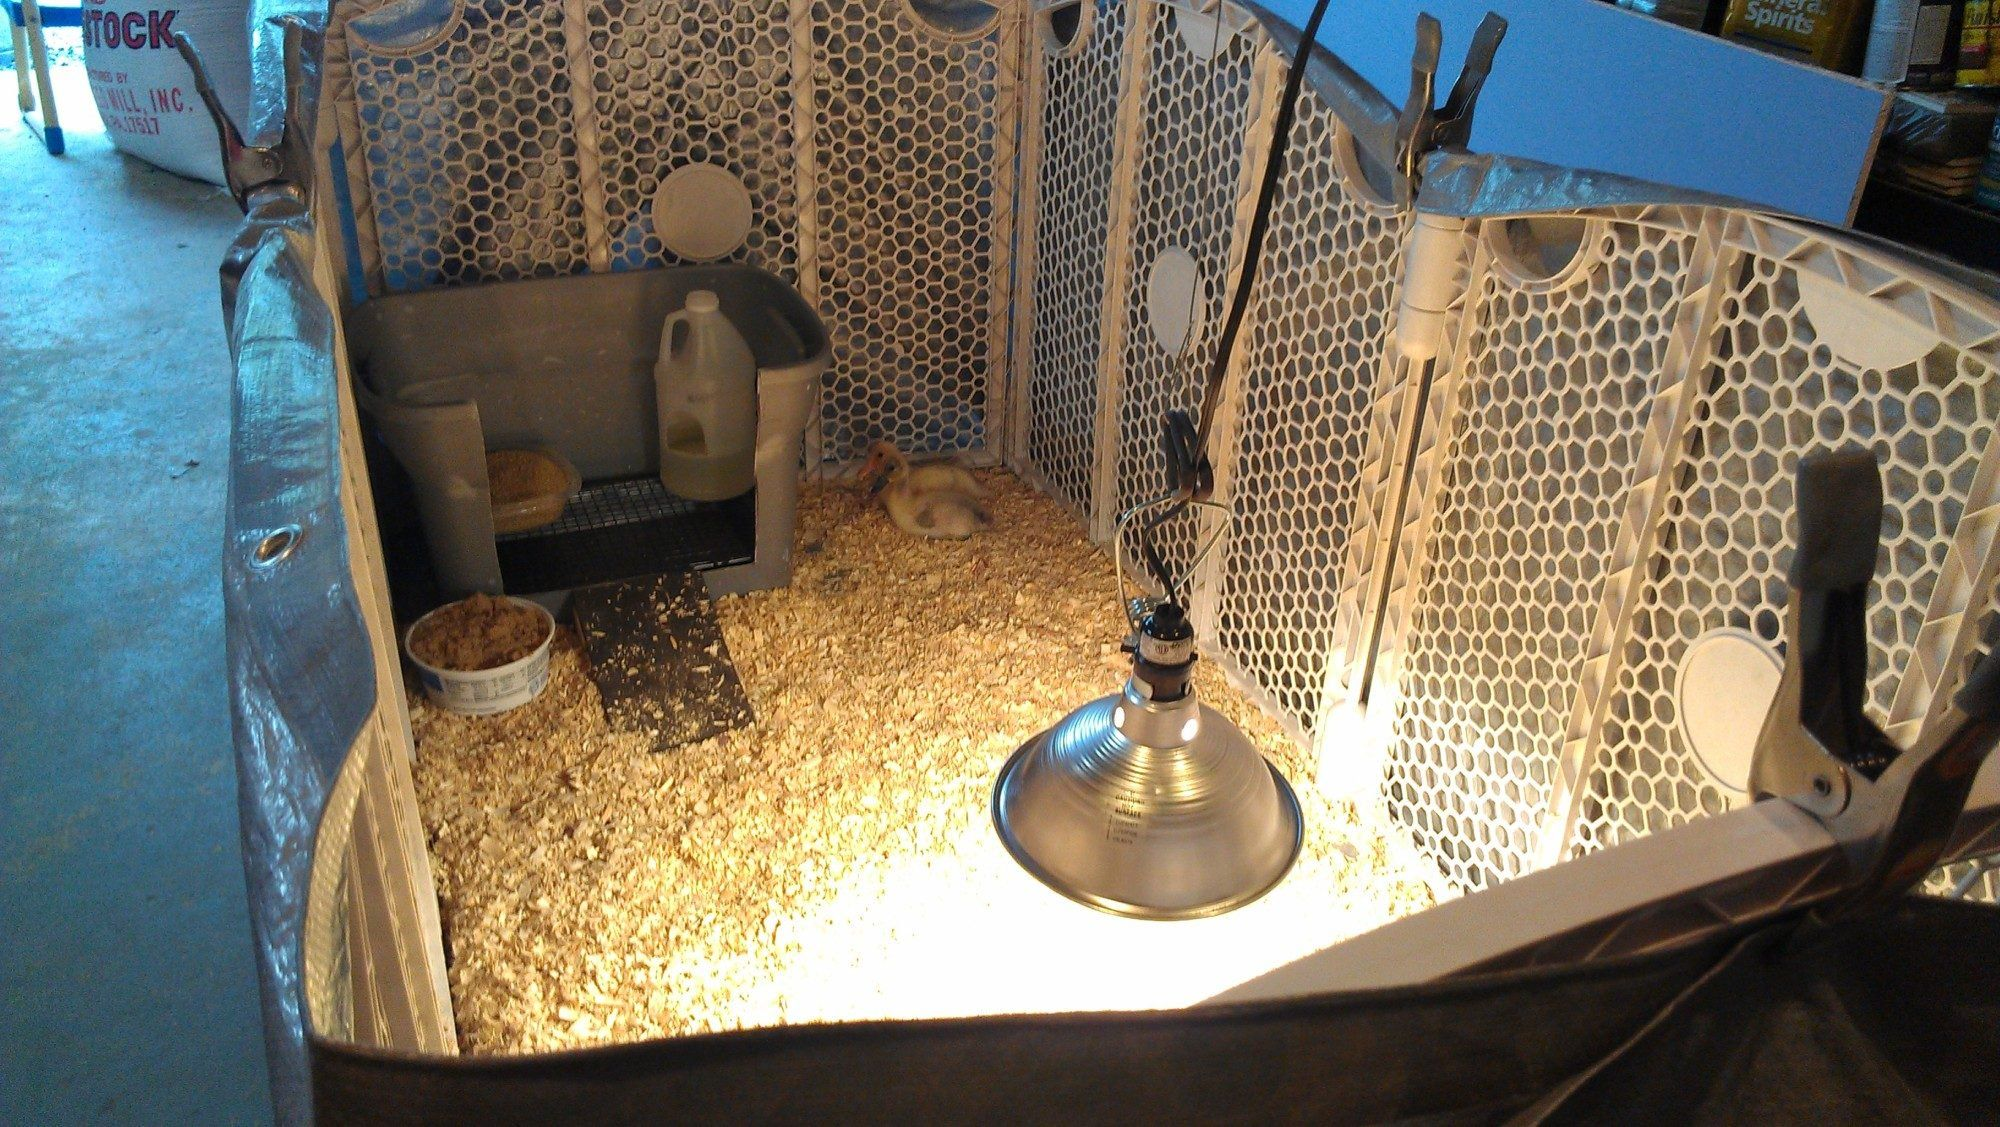 Duckling care brooder ideas duckling care chickens